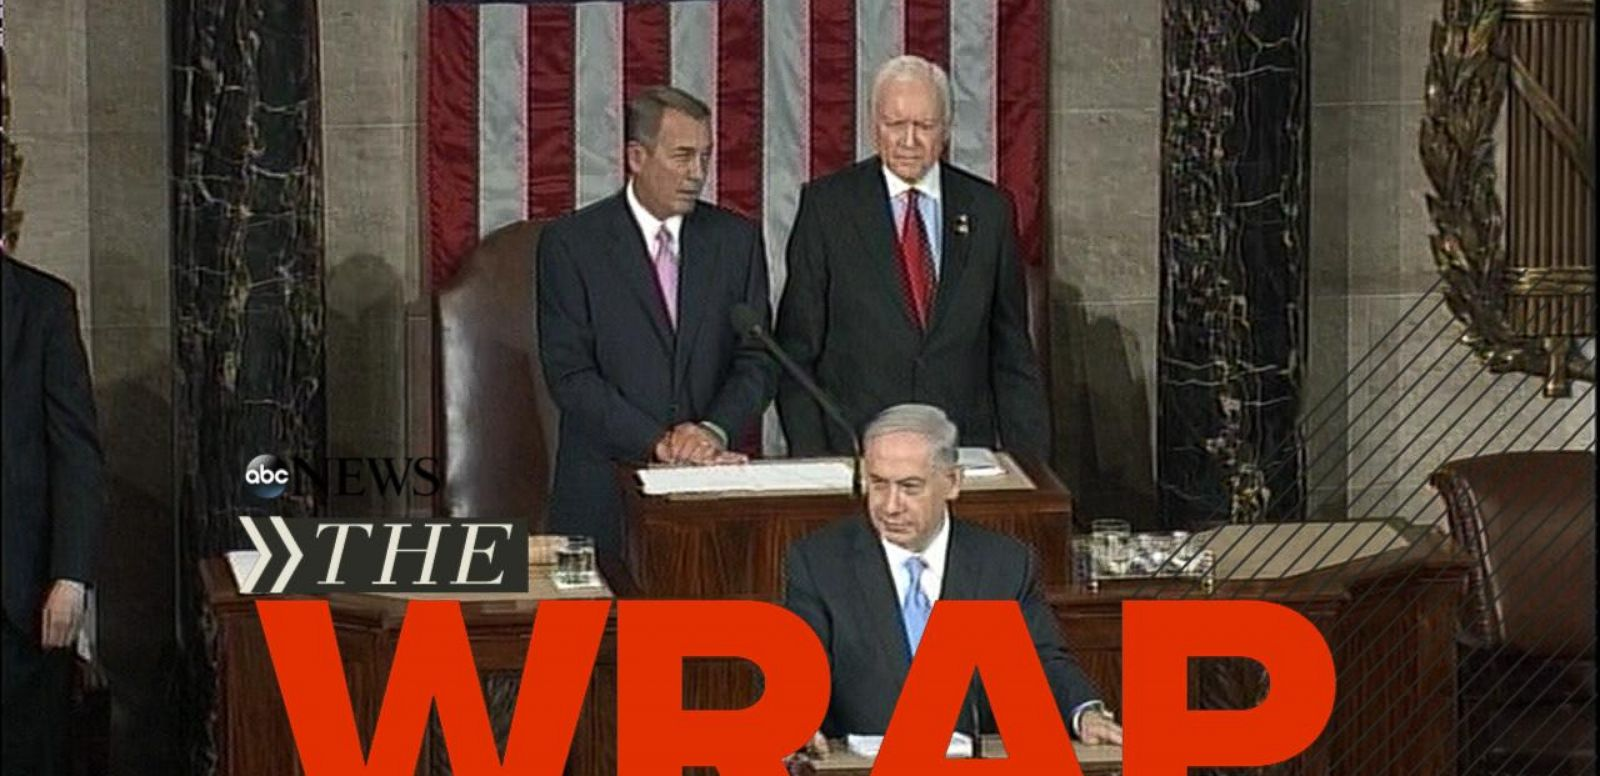 VIDEO: Israeli Prime Minister Addresses Congress; Justice Department Finds Racial Bias In Ferguson Police Department; Chile Volcano Erupts